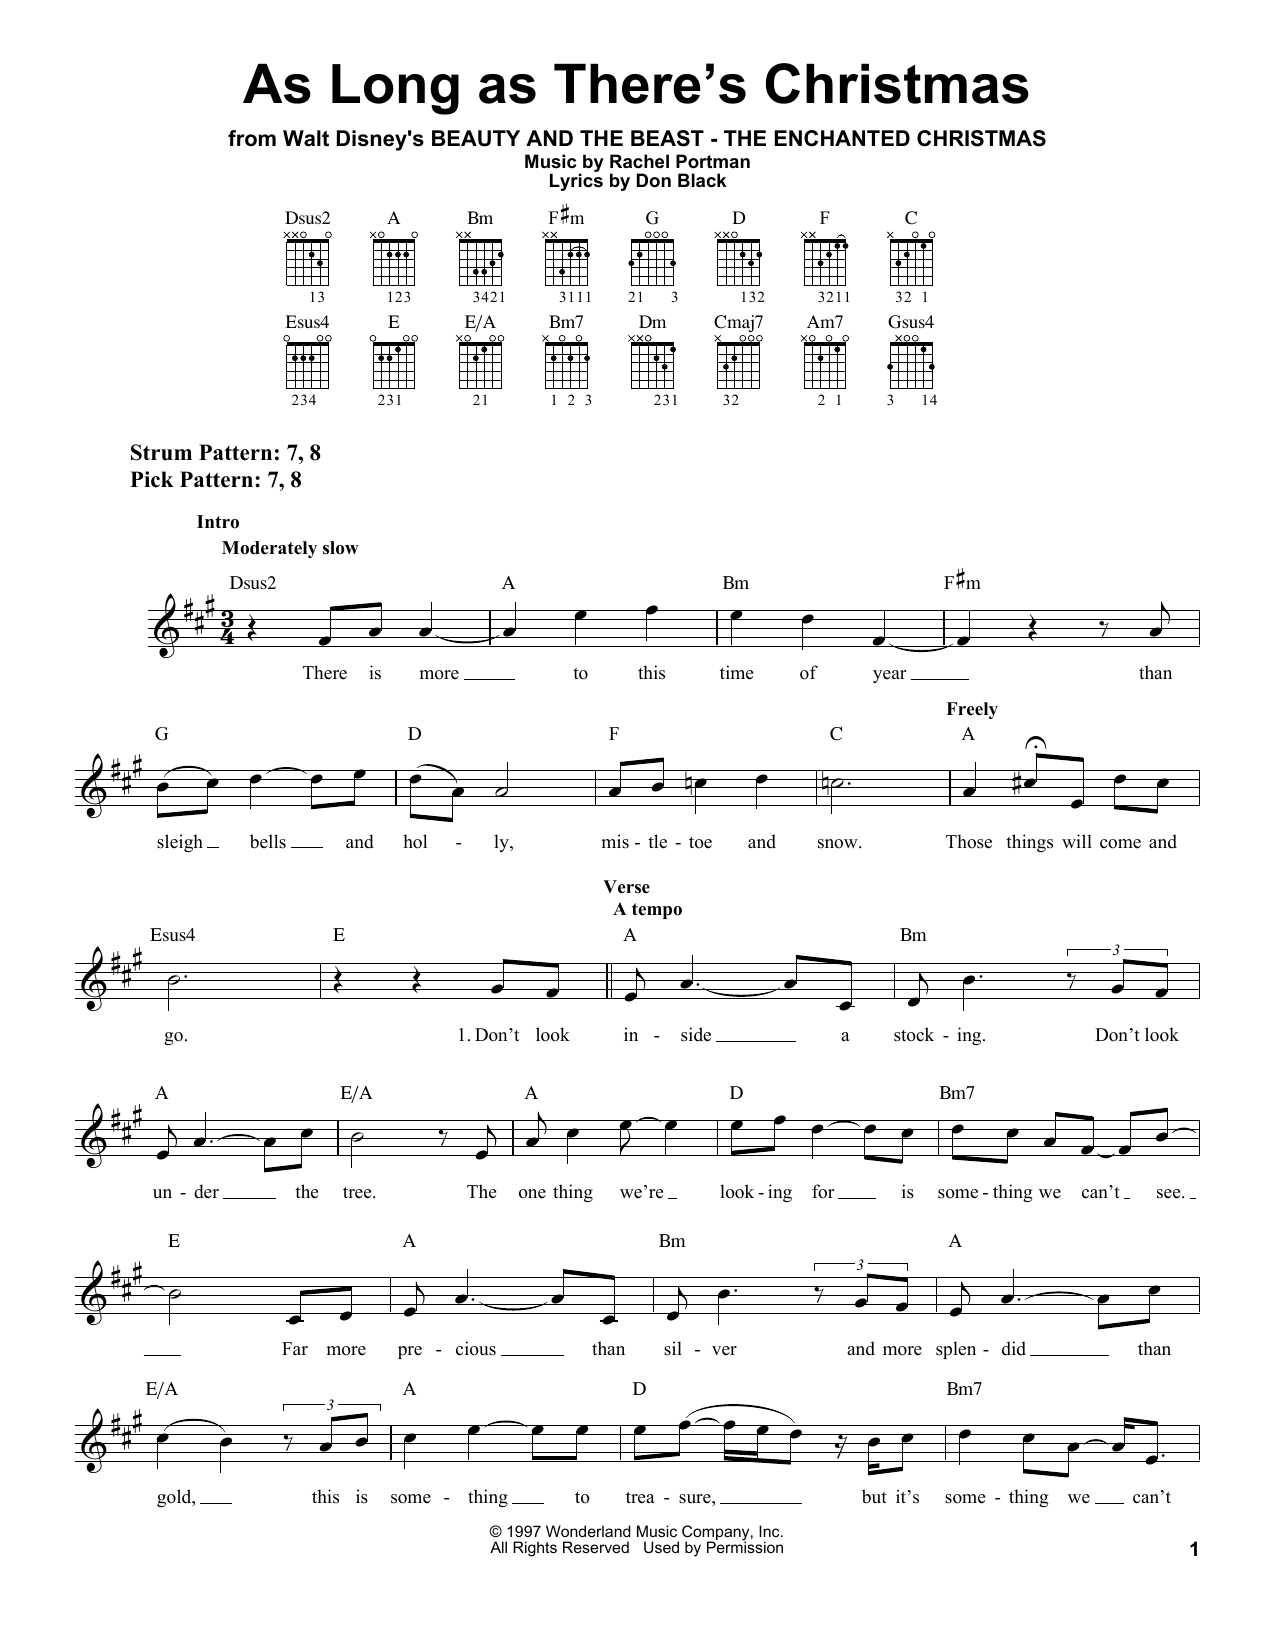 Peabo Bryson & Roberta Flack As Long As There's Christmas sheet music notes and chords. Download Printable PDF.